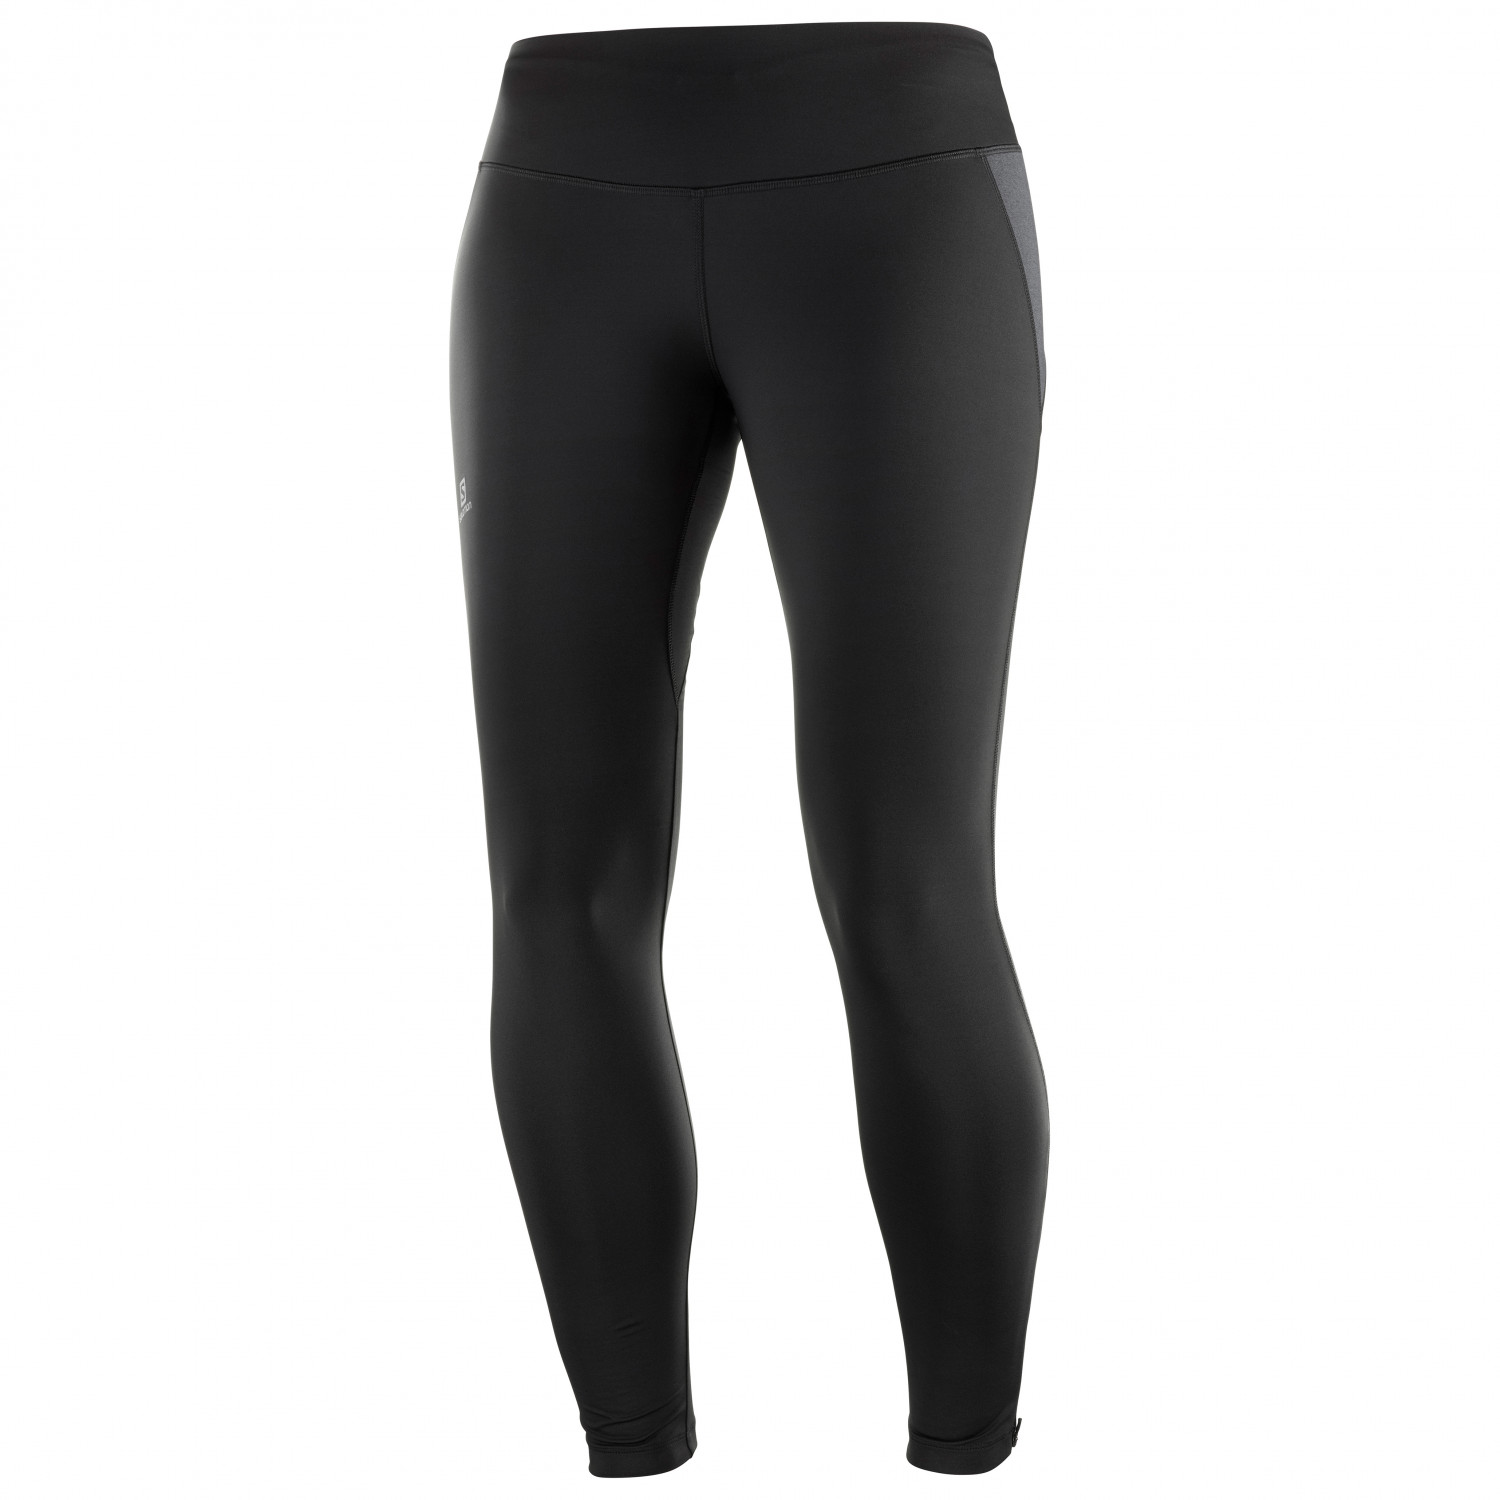 Salomon Agile Warm Tight Lauftights Damen online kaufen